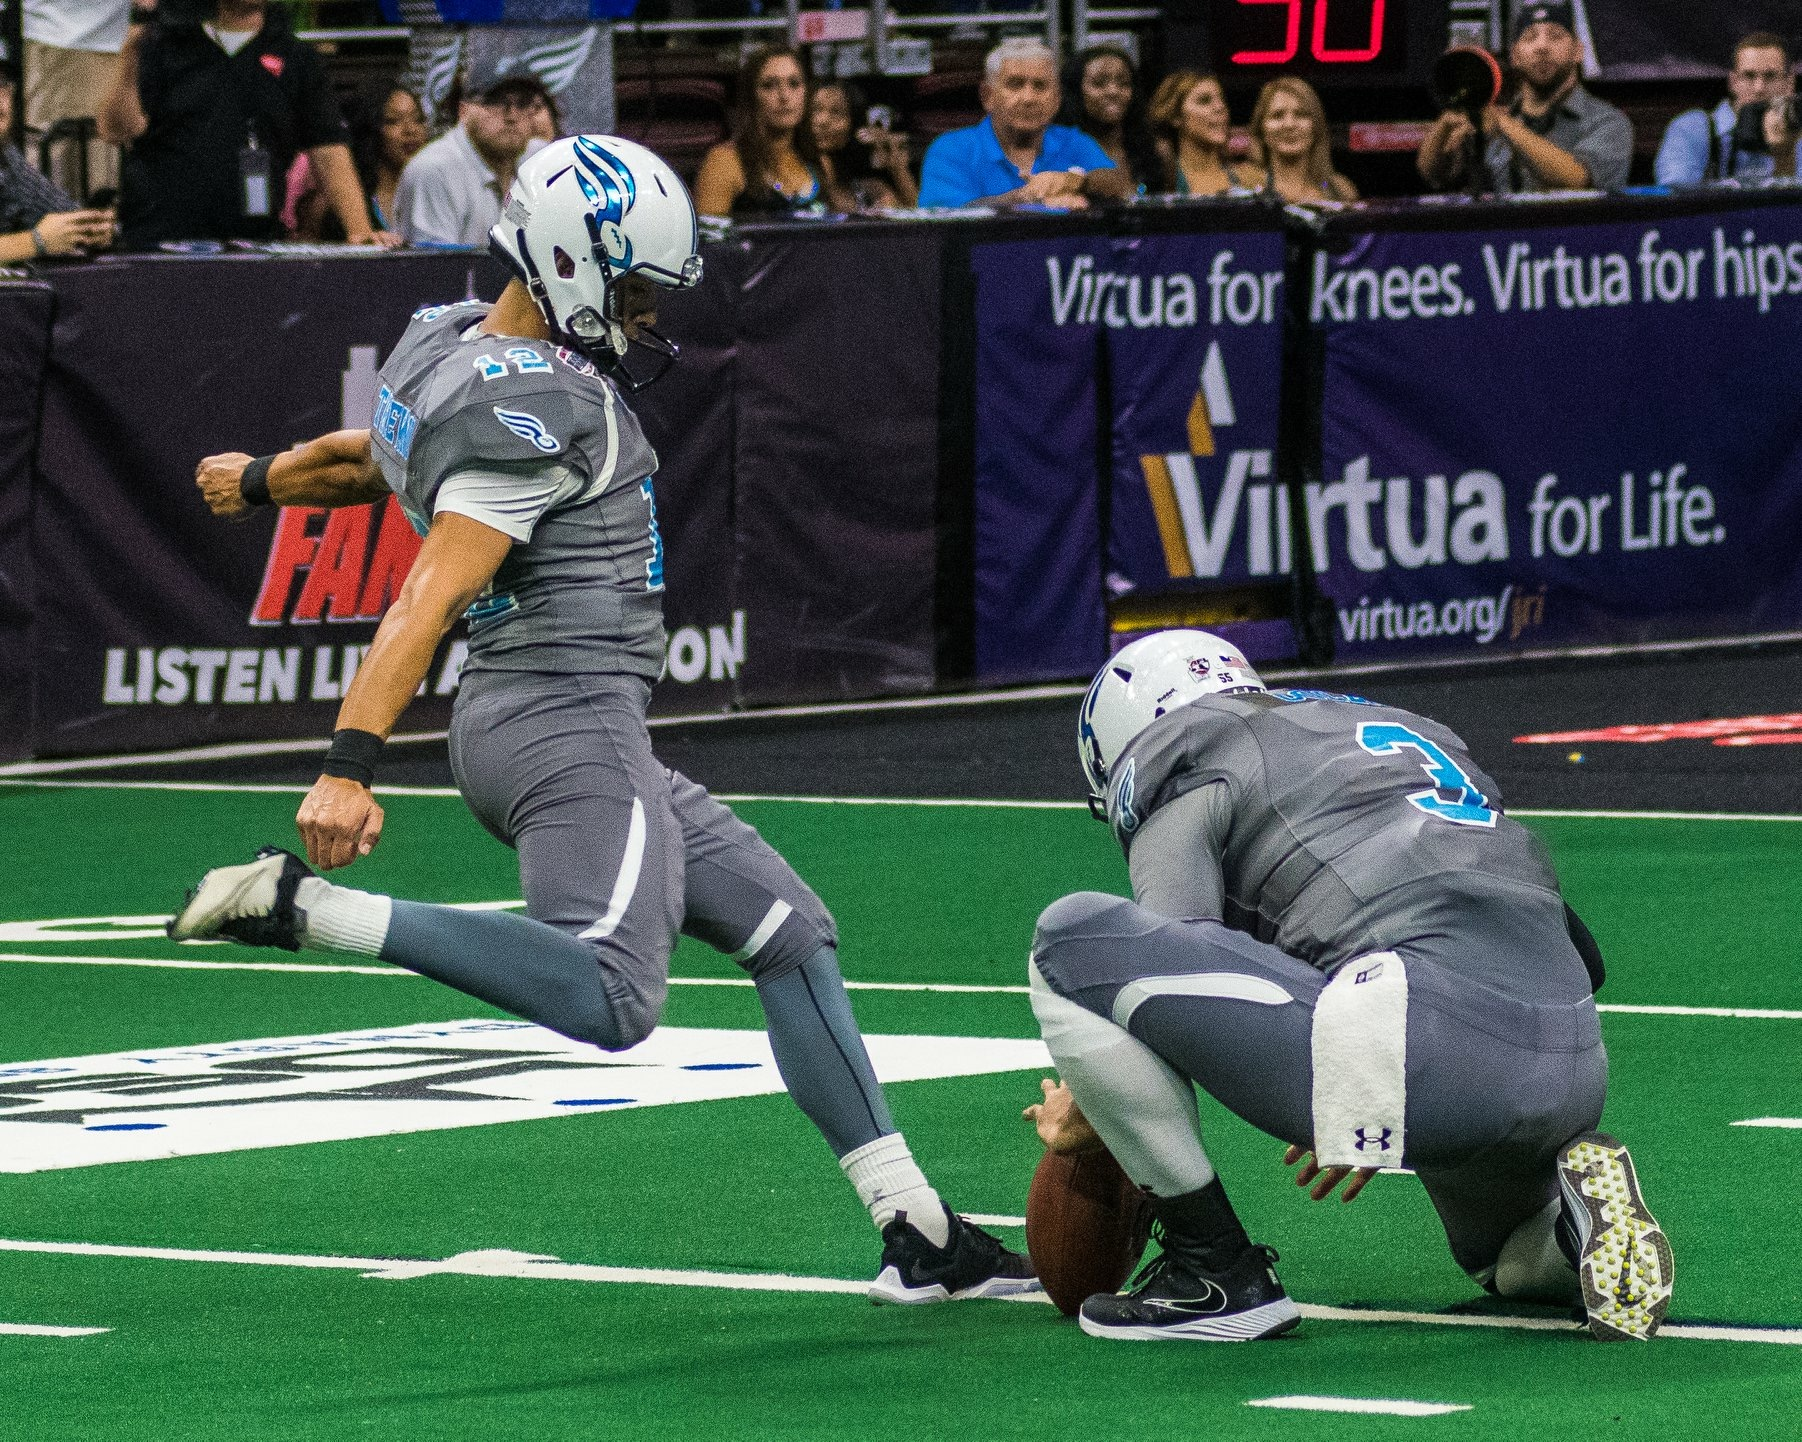 Adrian Trevino, Albany NY Area  Adrian is the current starting kicker for the Arena Football League's Albany Empire and is available for individual, group and camp sessions in the Albany Area